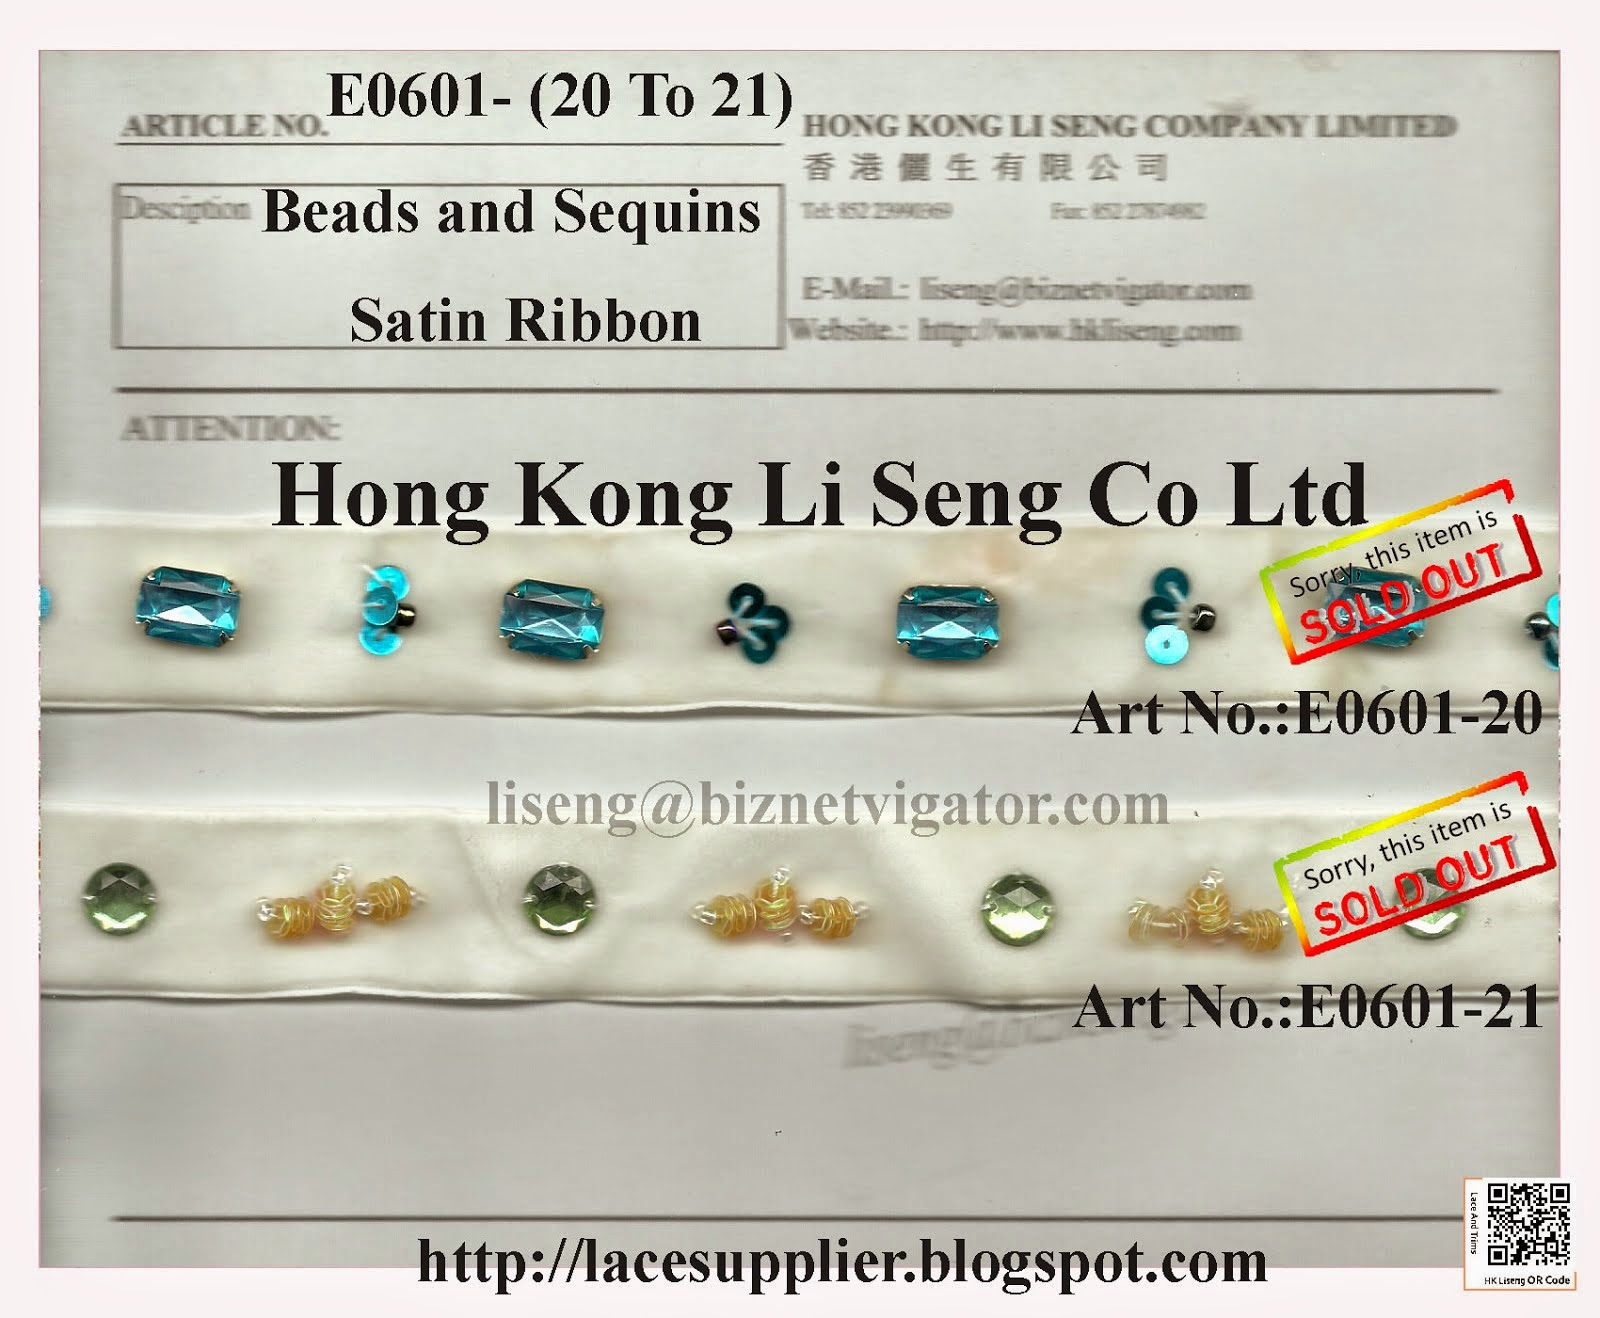 Satin Ribbon with Beads and Sequins Manufacturer Wholesaler and Supplier